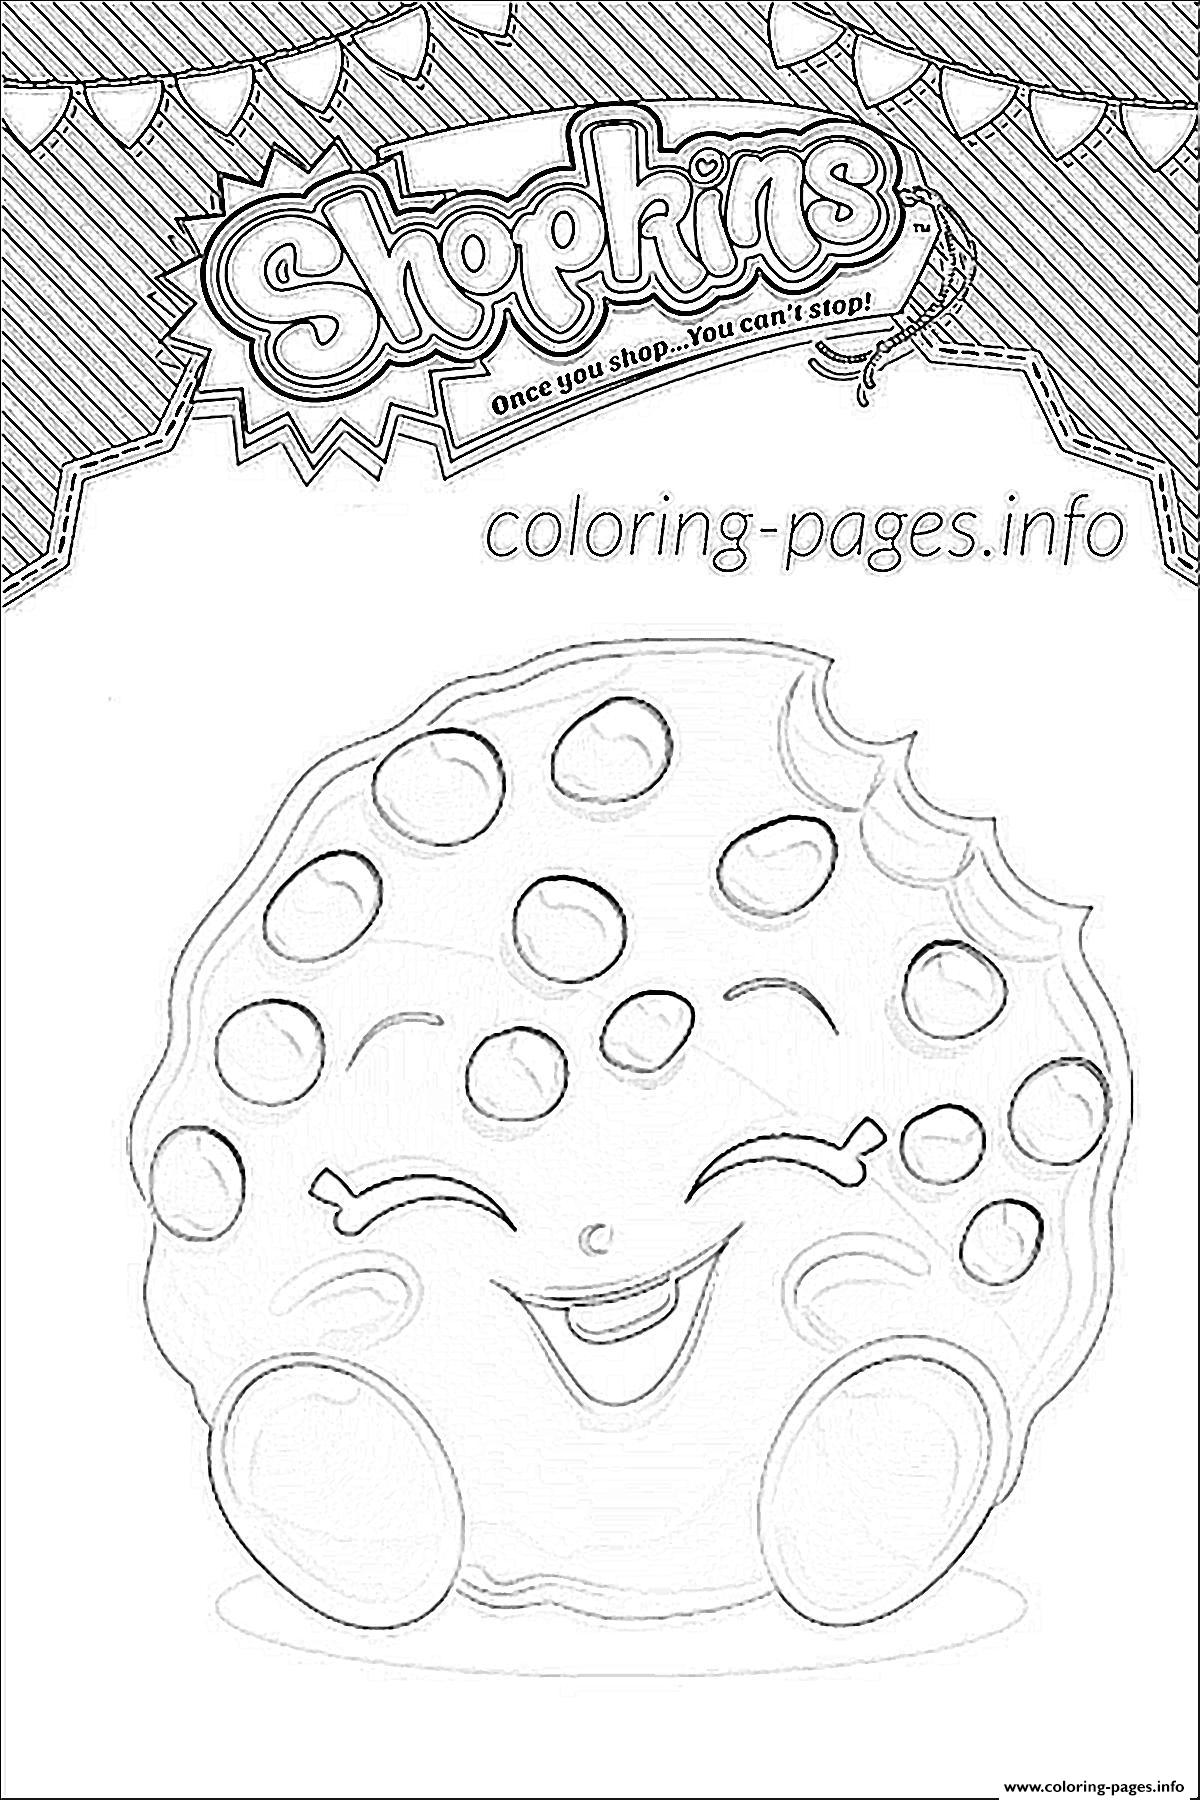 Shopkins Kooky Cookie Shoppies Coloring Pages Print Download 571 Prints